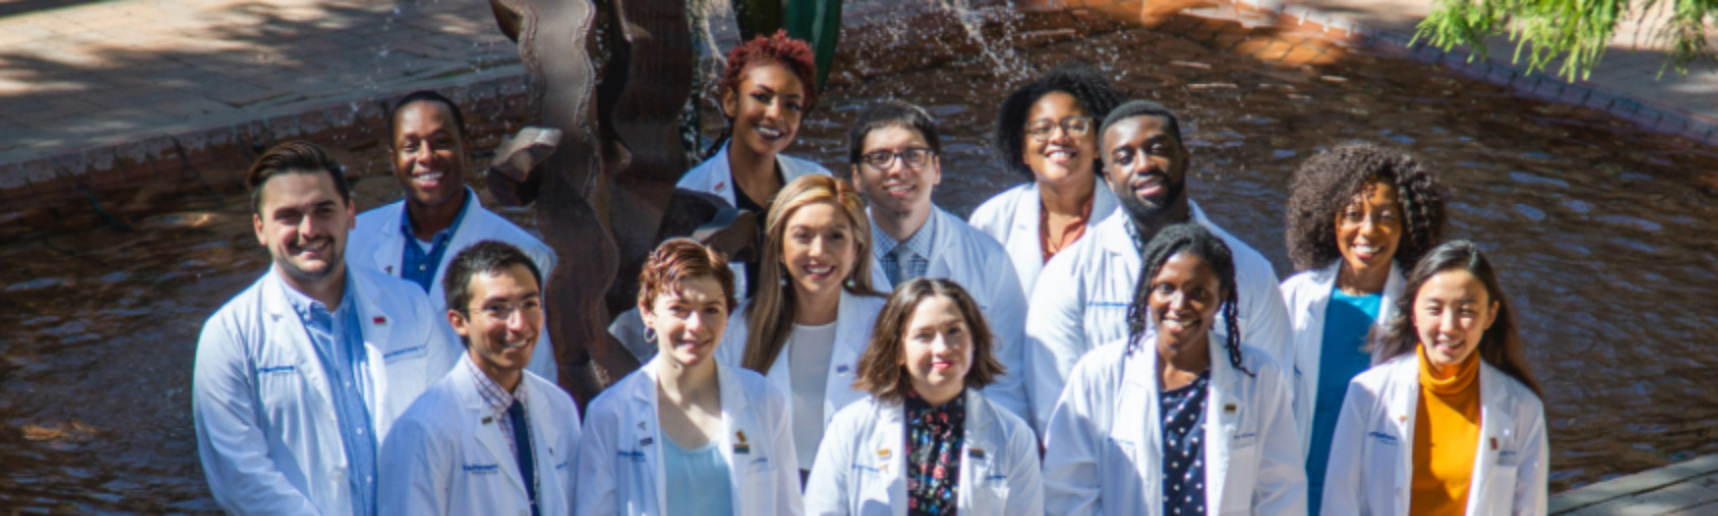 A group of diverse medical students standing in front of a tree